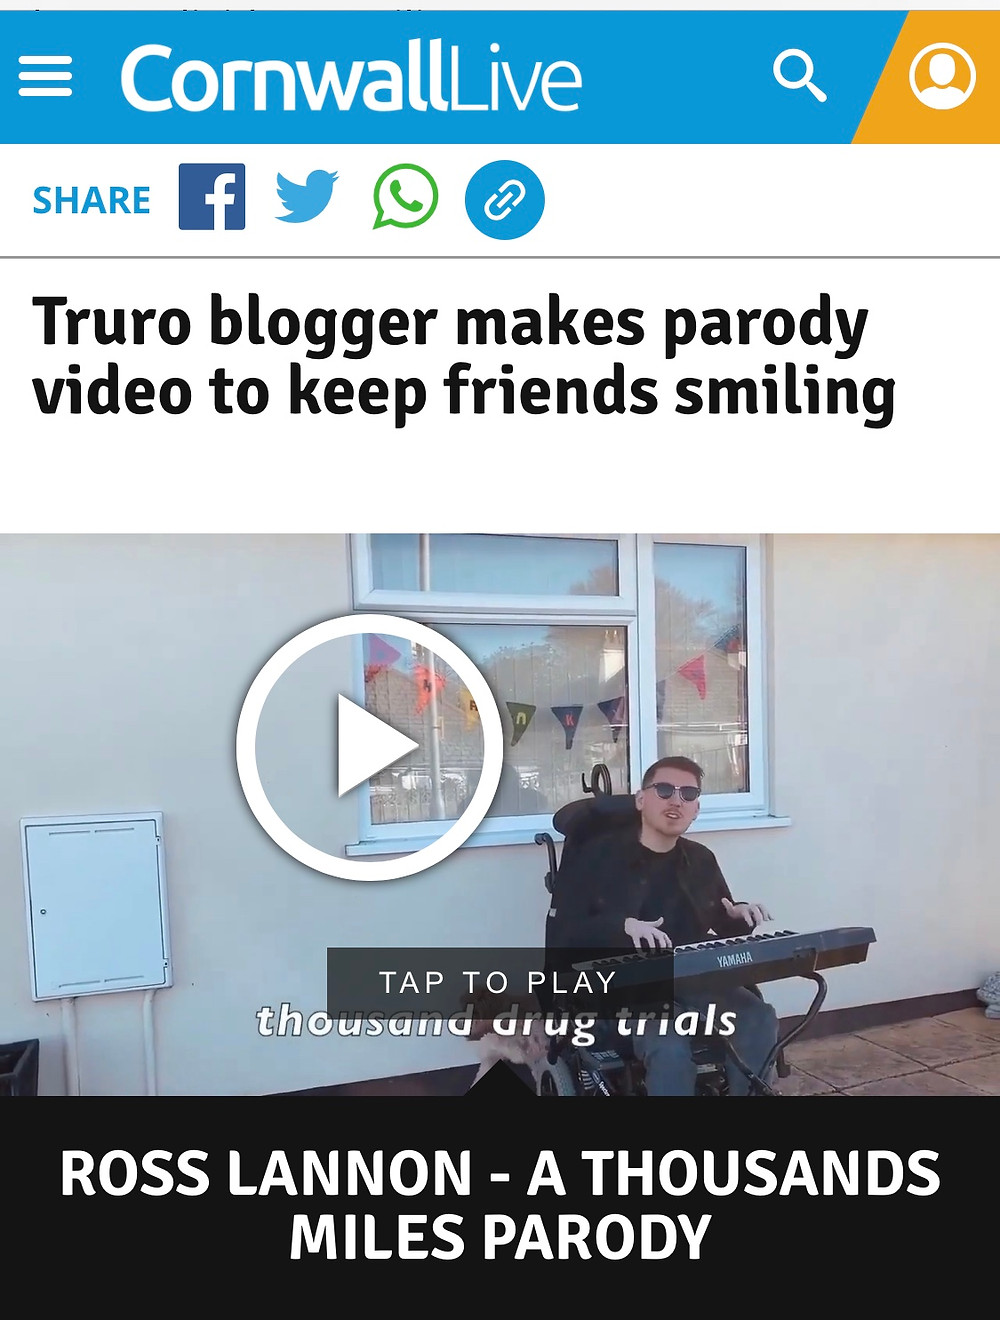 Screenshot of a CornwallLive news article titled: Truro Blogger makes parody video to keep friends smiling